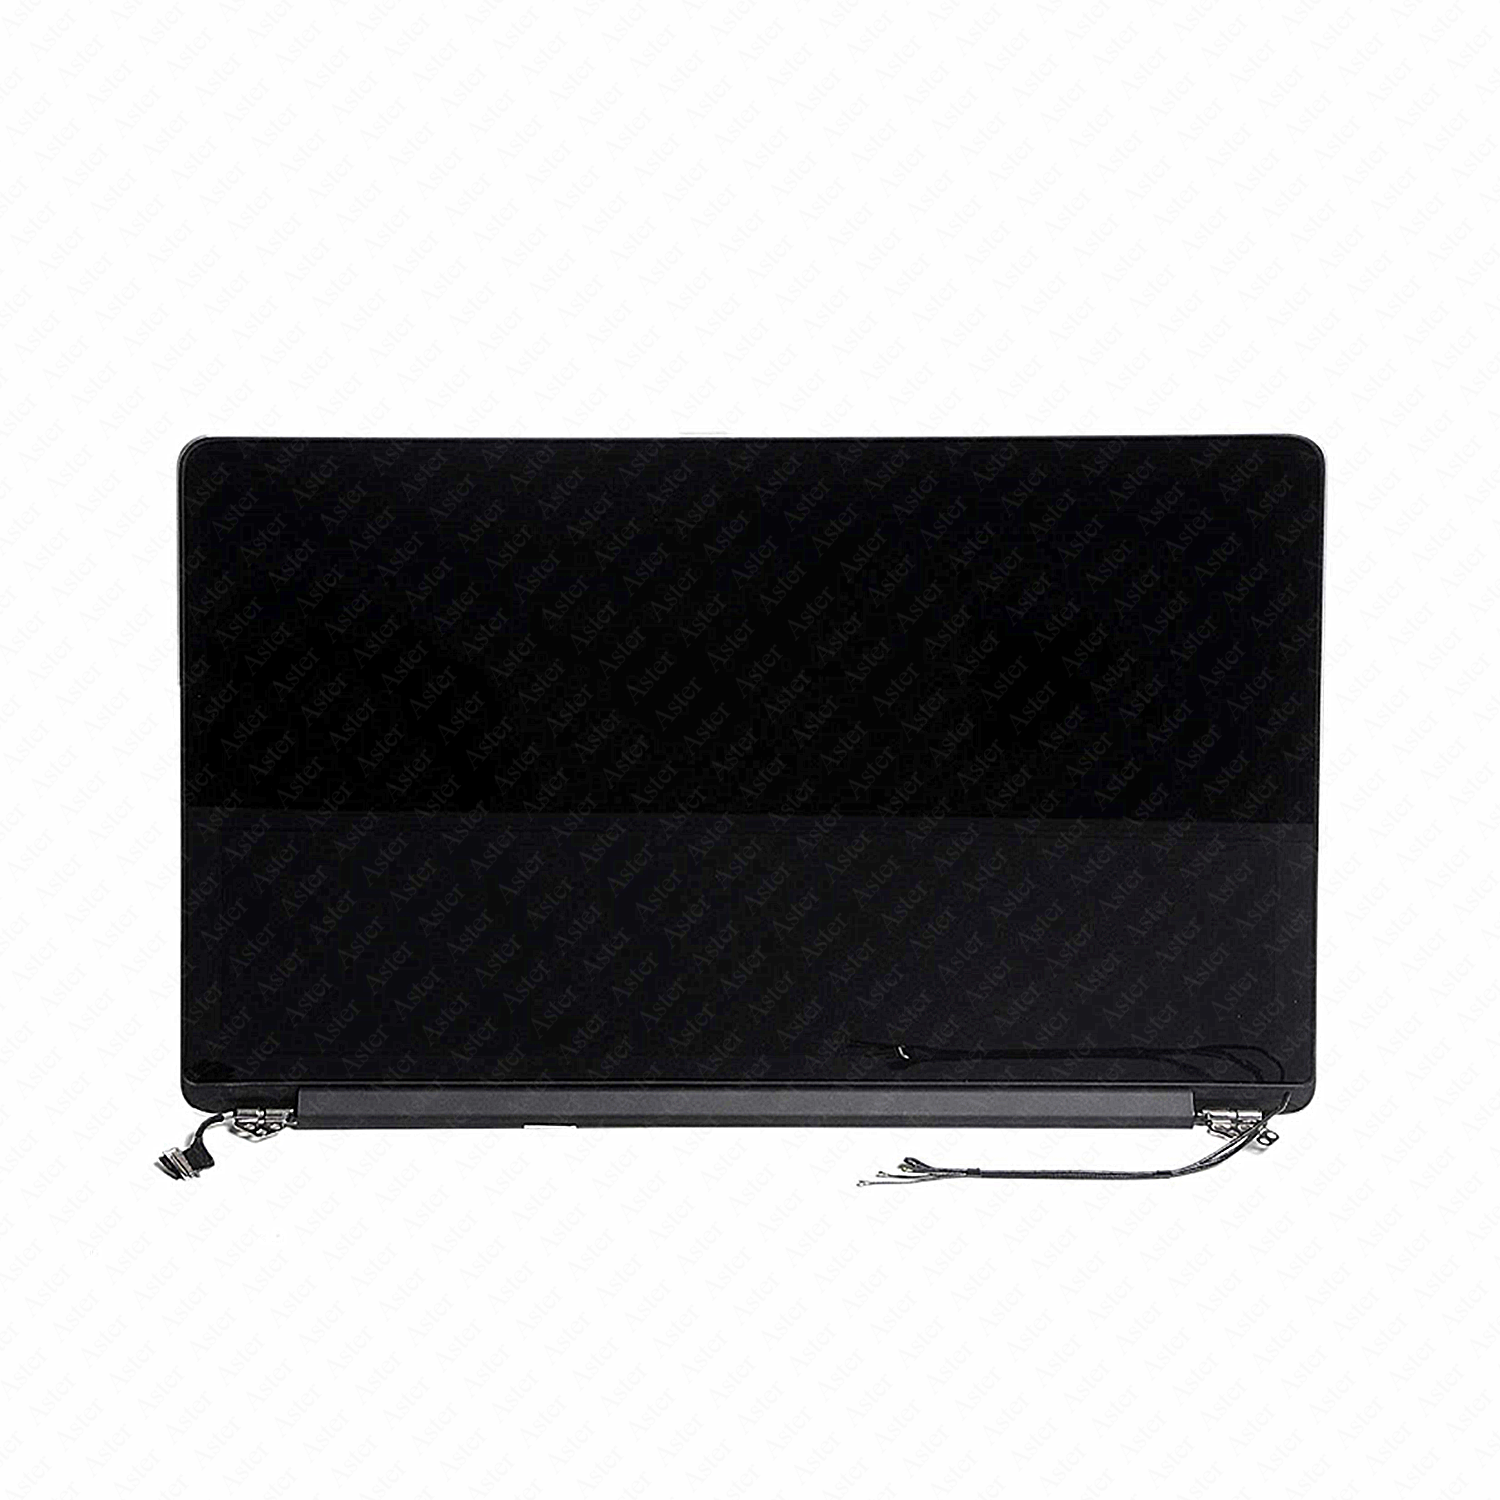 "Genuine 2015 Year For MacBook Pro Retina 15"" A1398 LCD Screen Assembly Full Display With Aluminum Cover Complete"